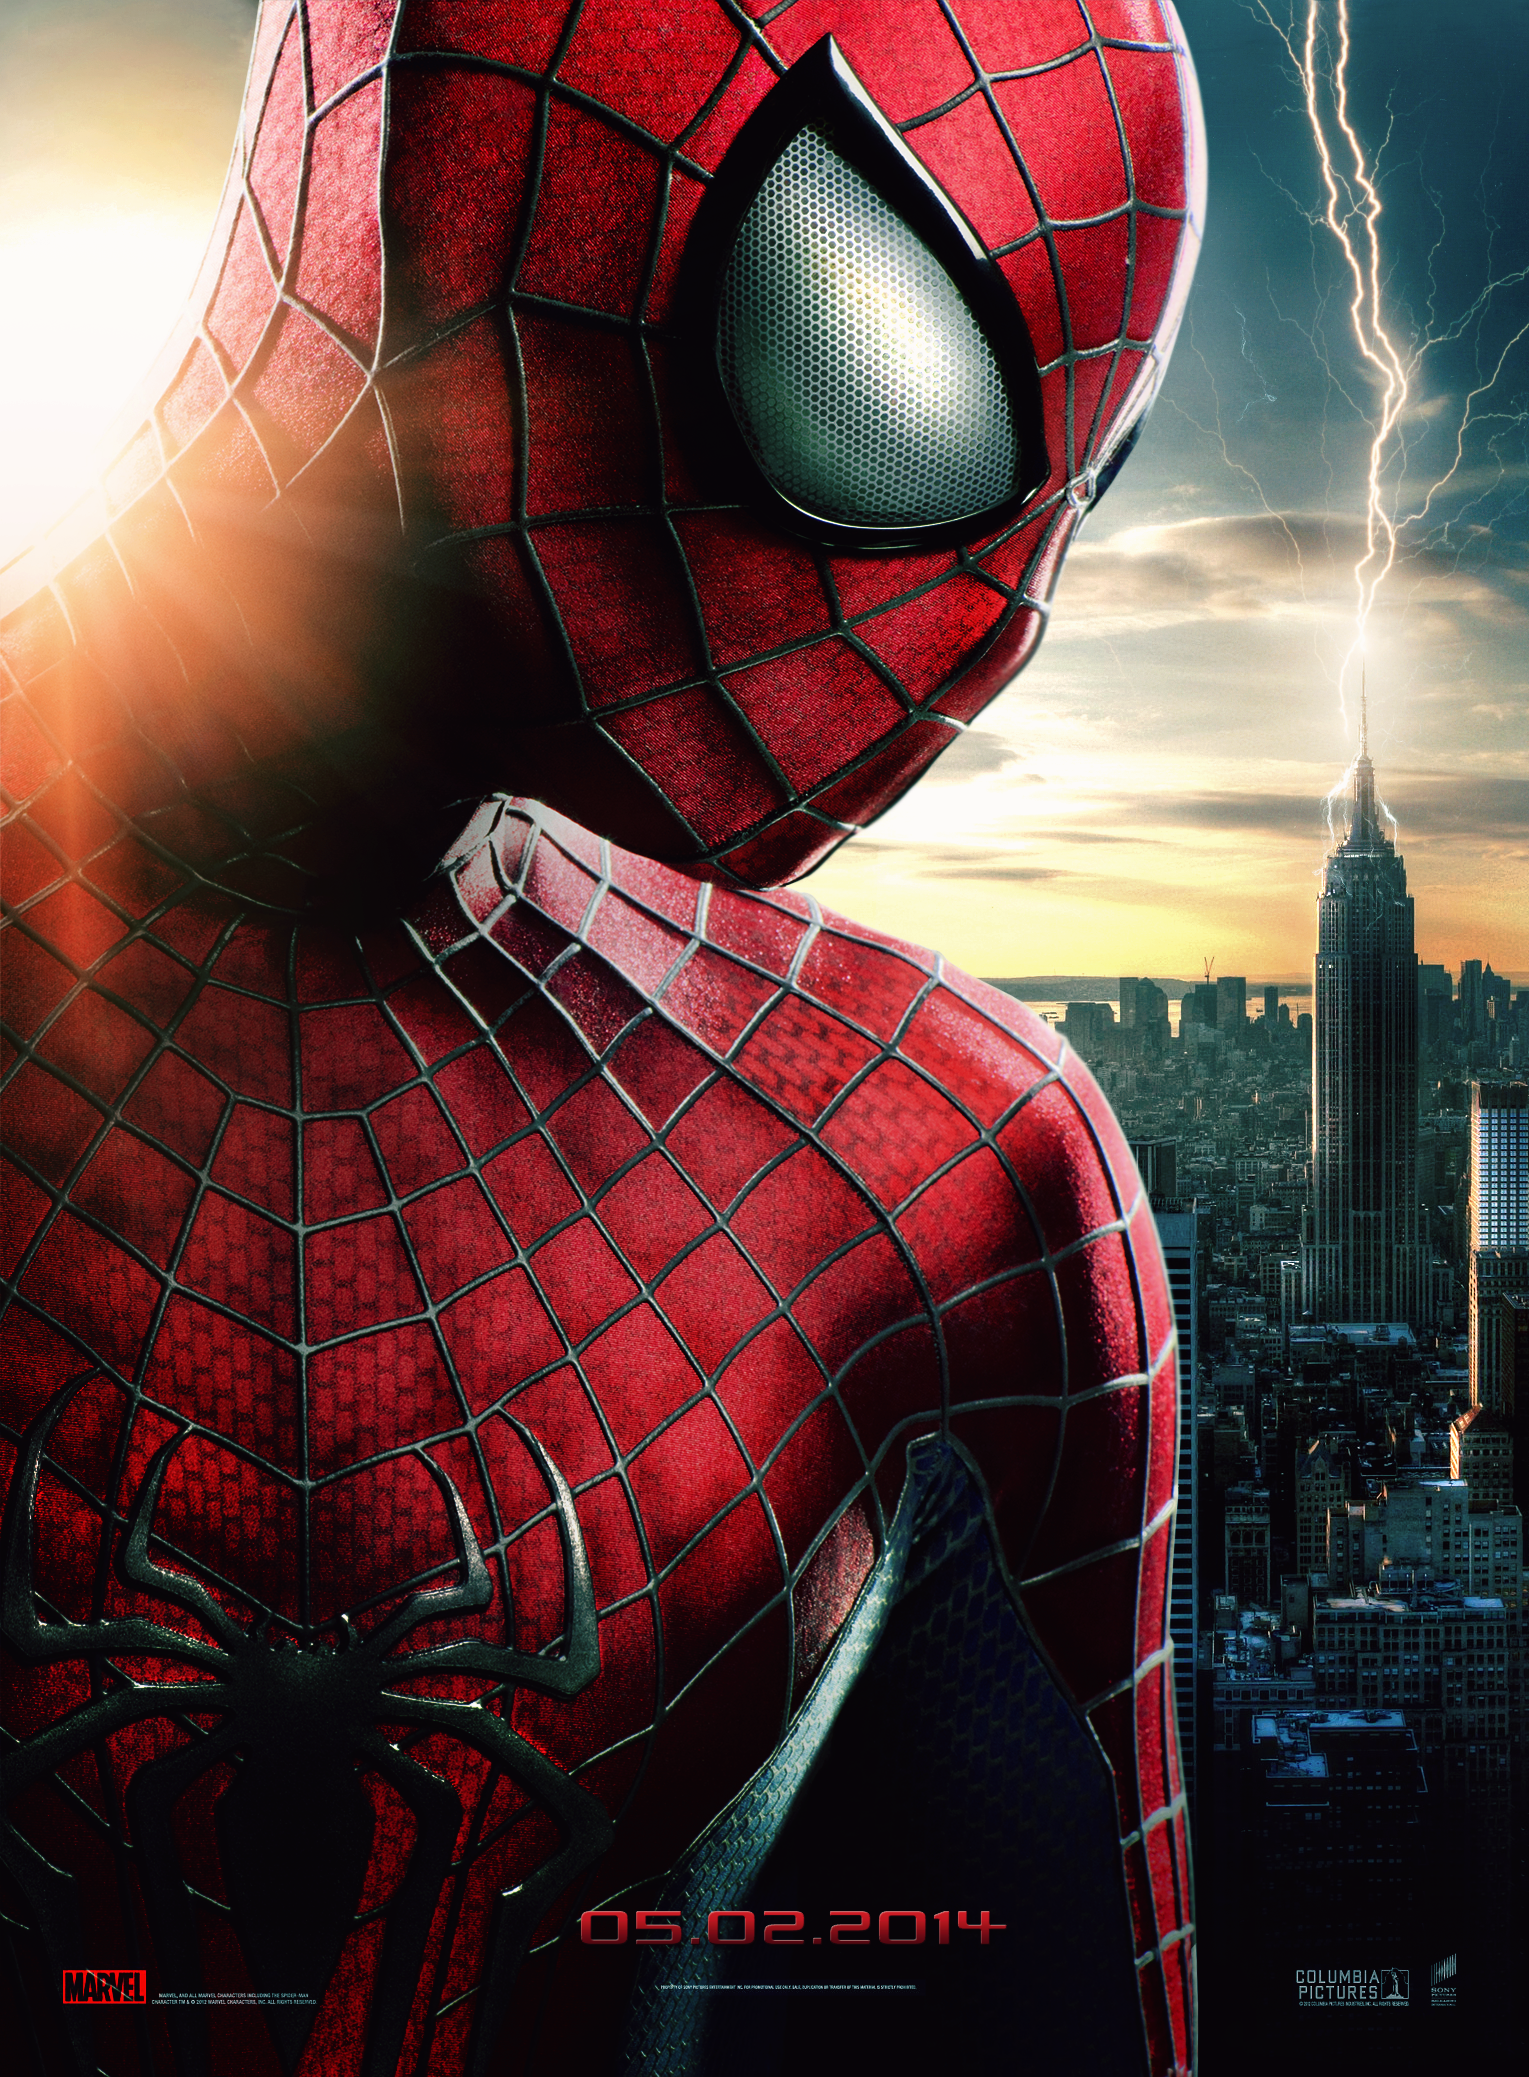 Group Of Amazing Spider Man 2 Poster Wallpaper